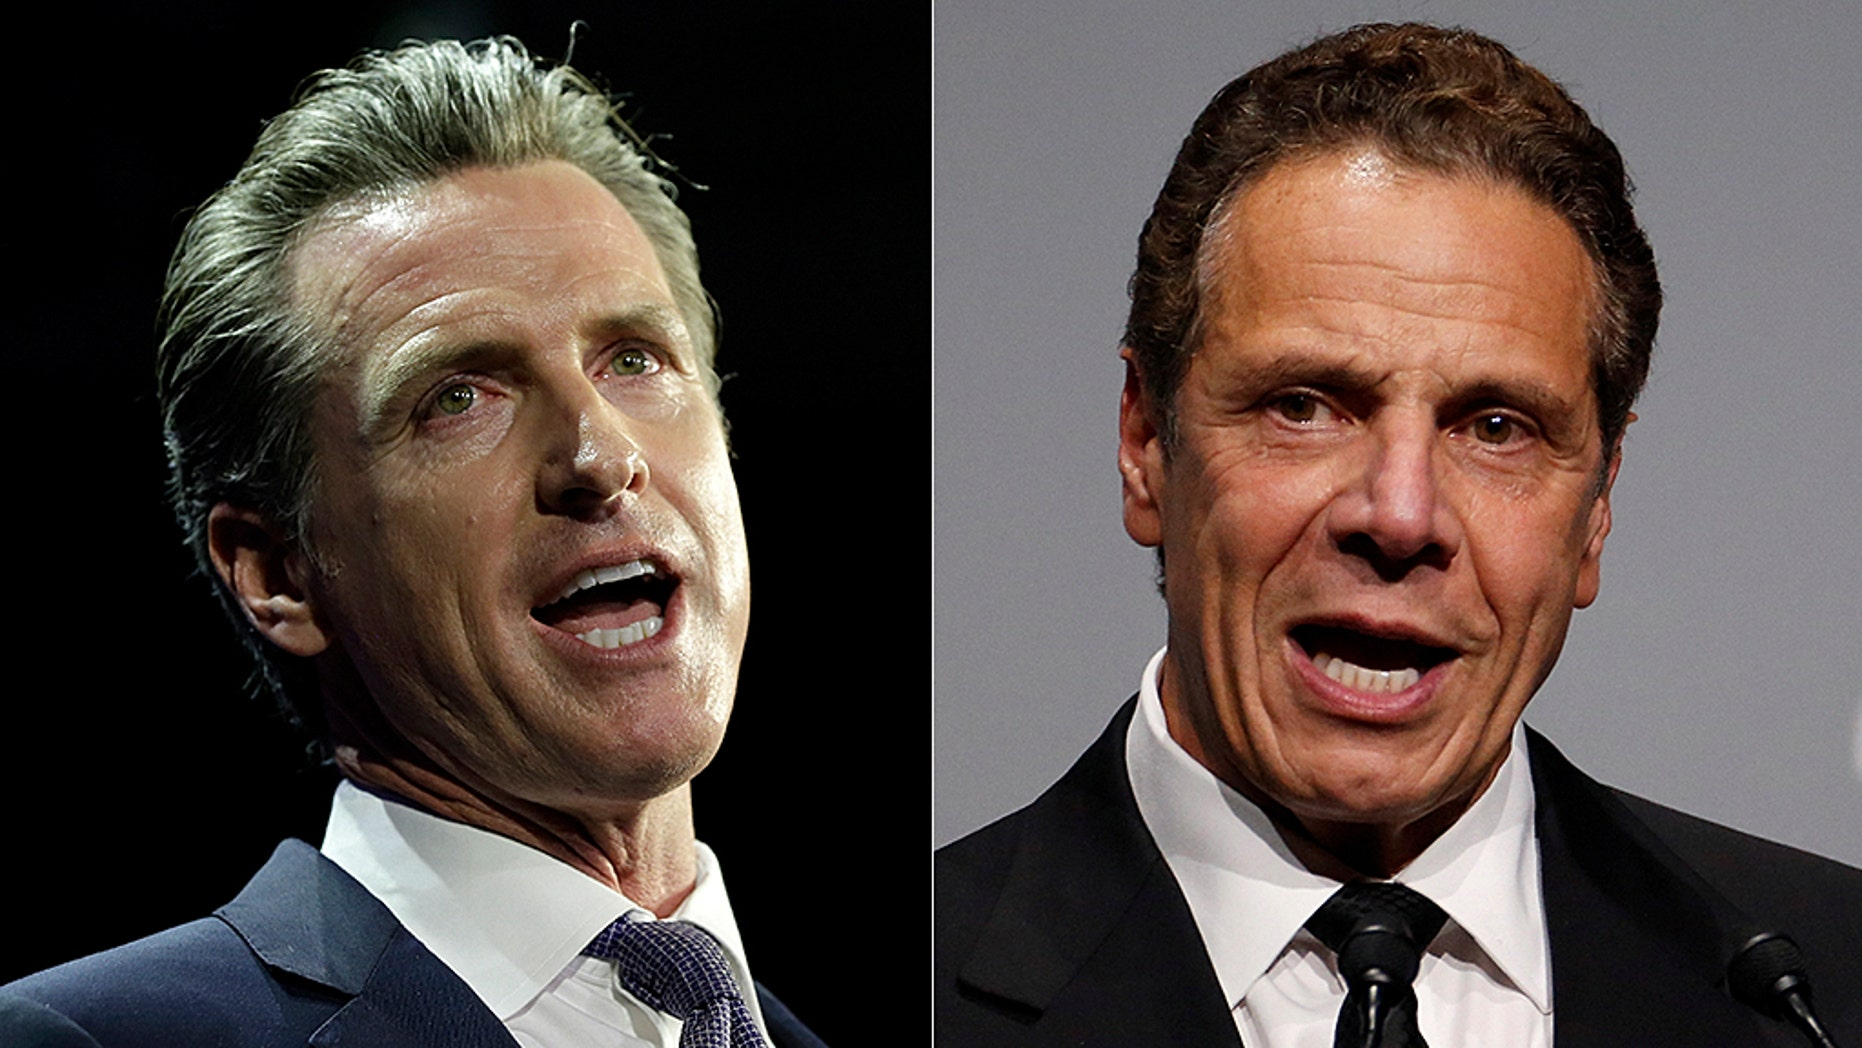 California Gov. Gavin Newson; New York Gov. Andrew Cuomo